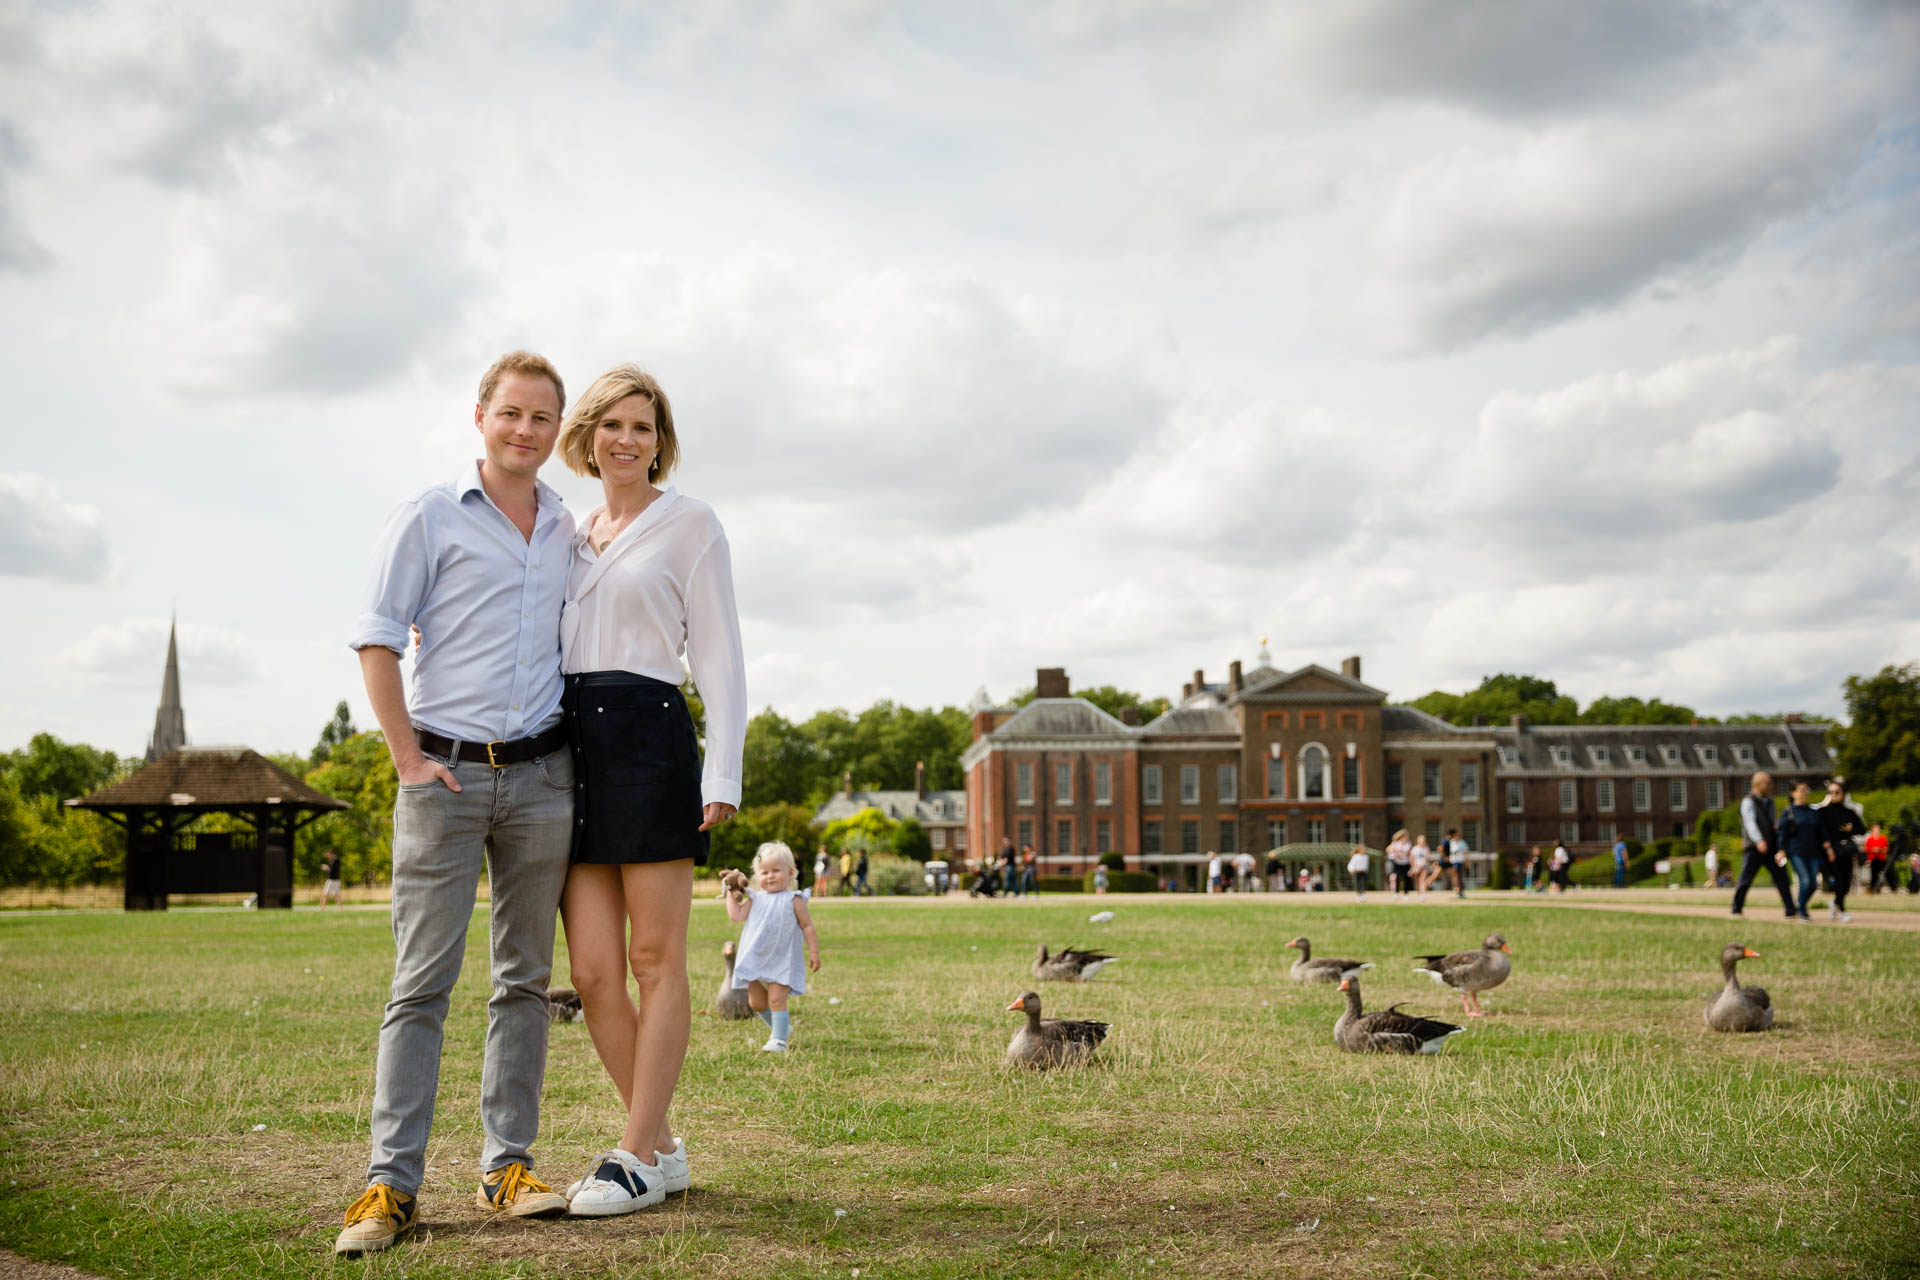 family in front of Kensington Palace